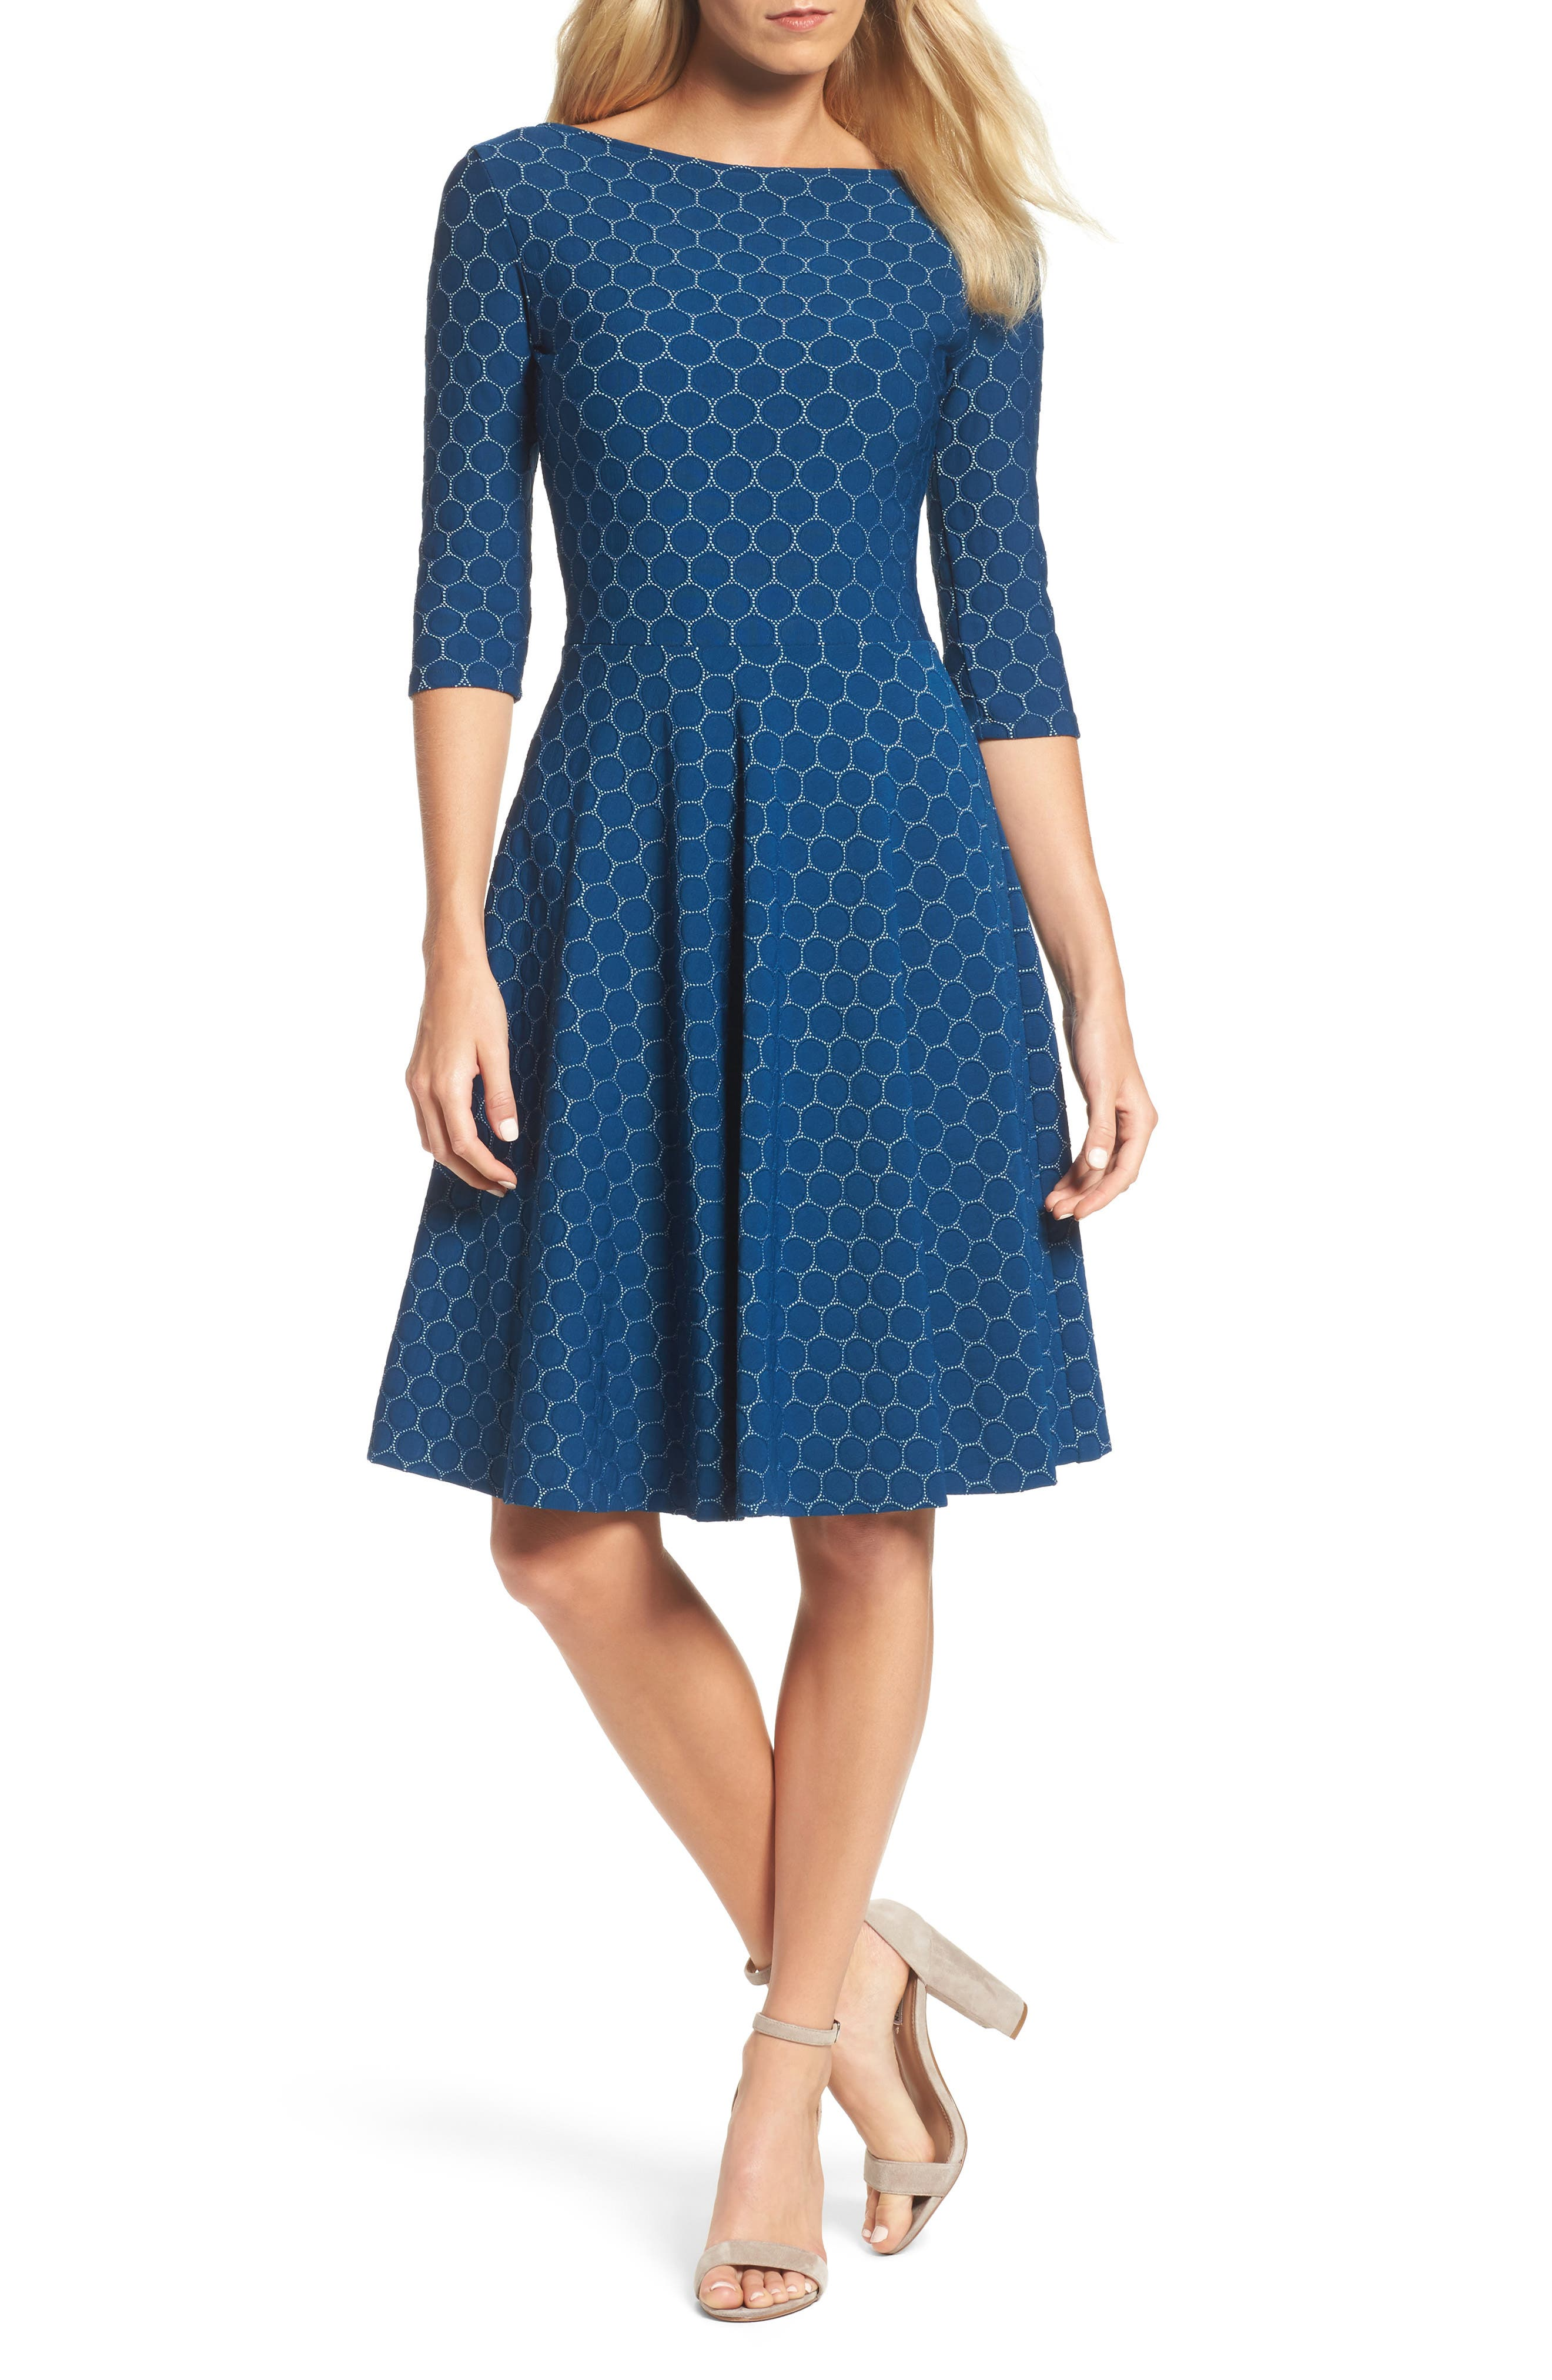 Alternate Image 1 Selected - Leota Circle Knit Fit & Flare Dress